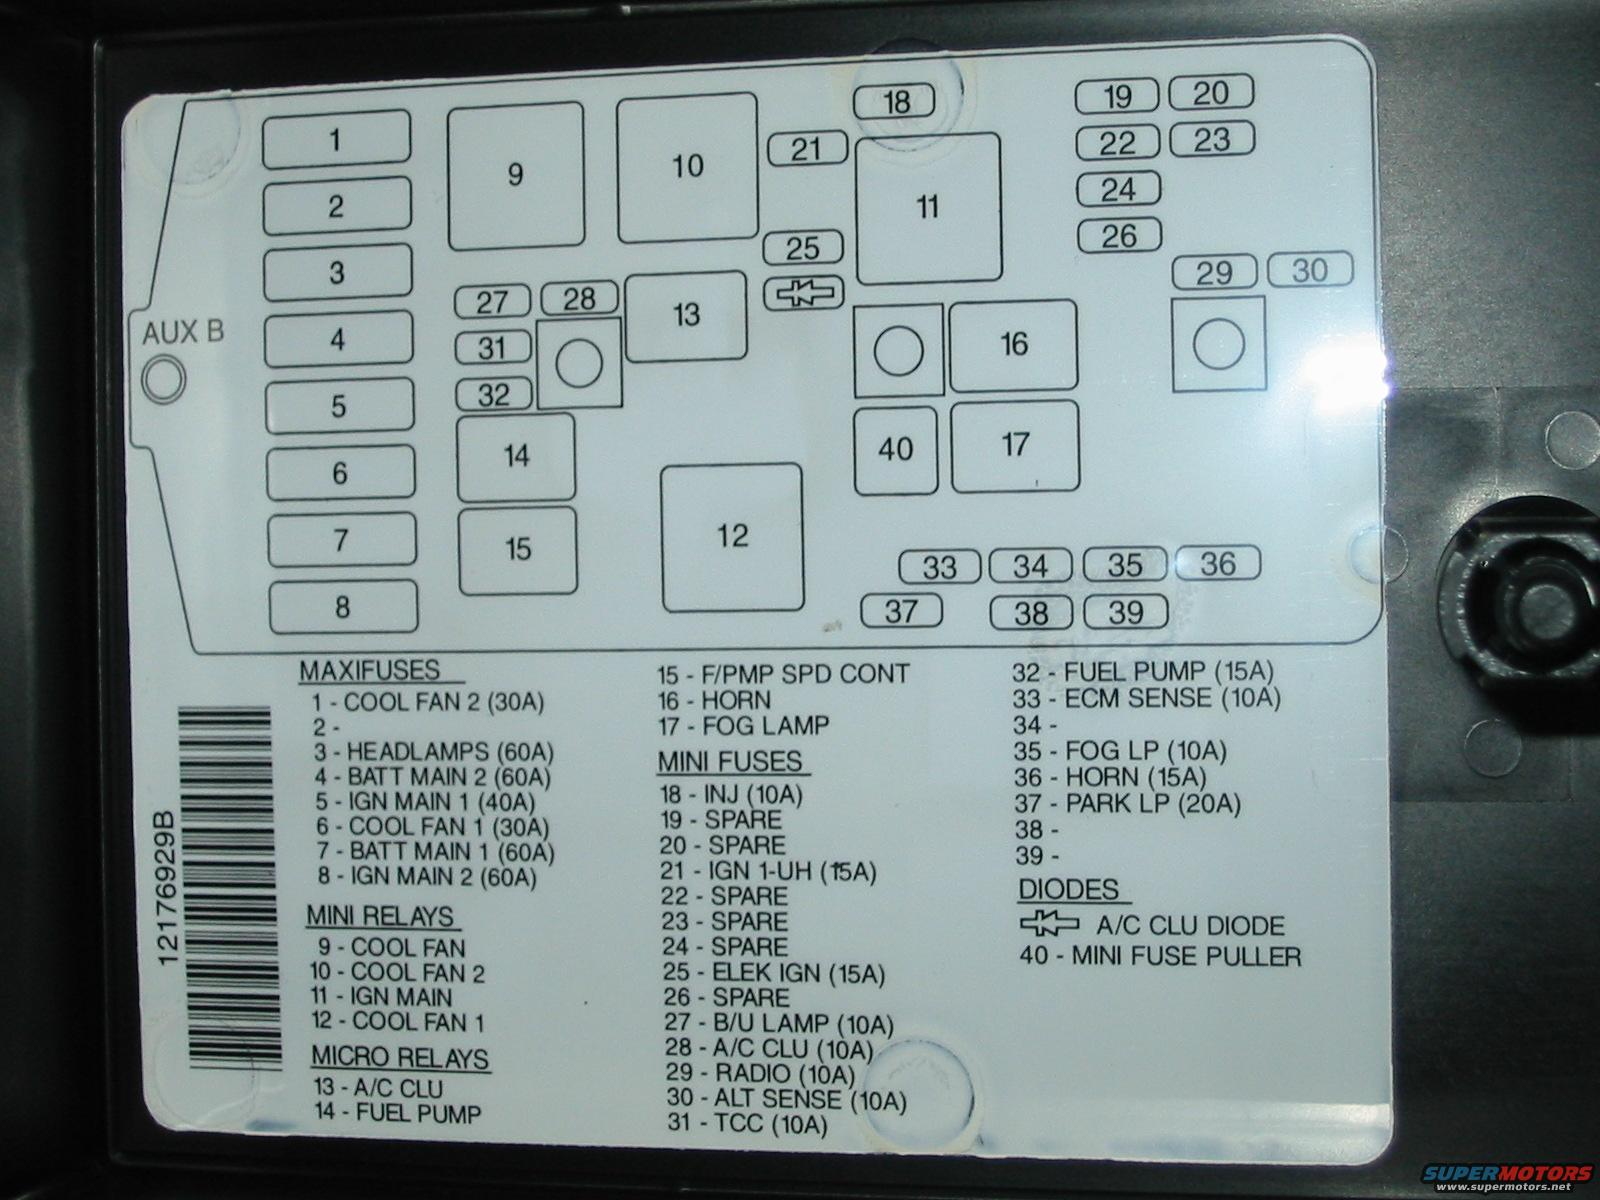 fuse relay panel diagram speedometer stops working in neutral page 2 fuse box on 2002 grand prix at honlapkeszites.co